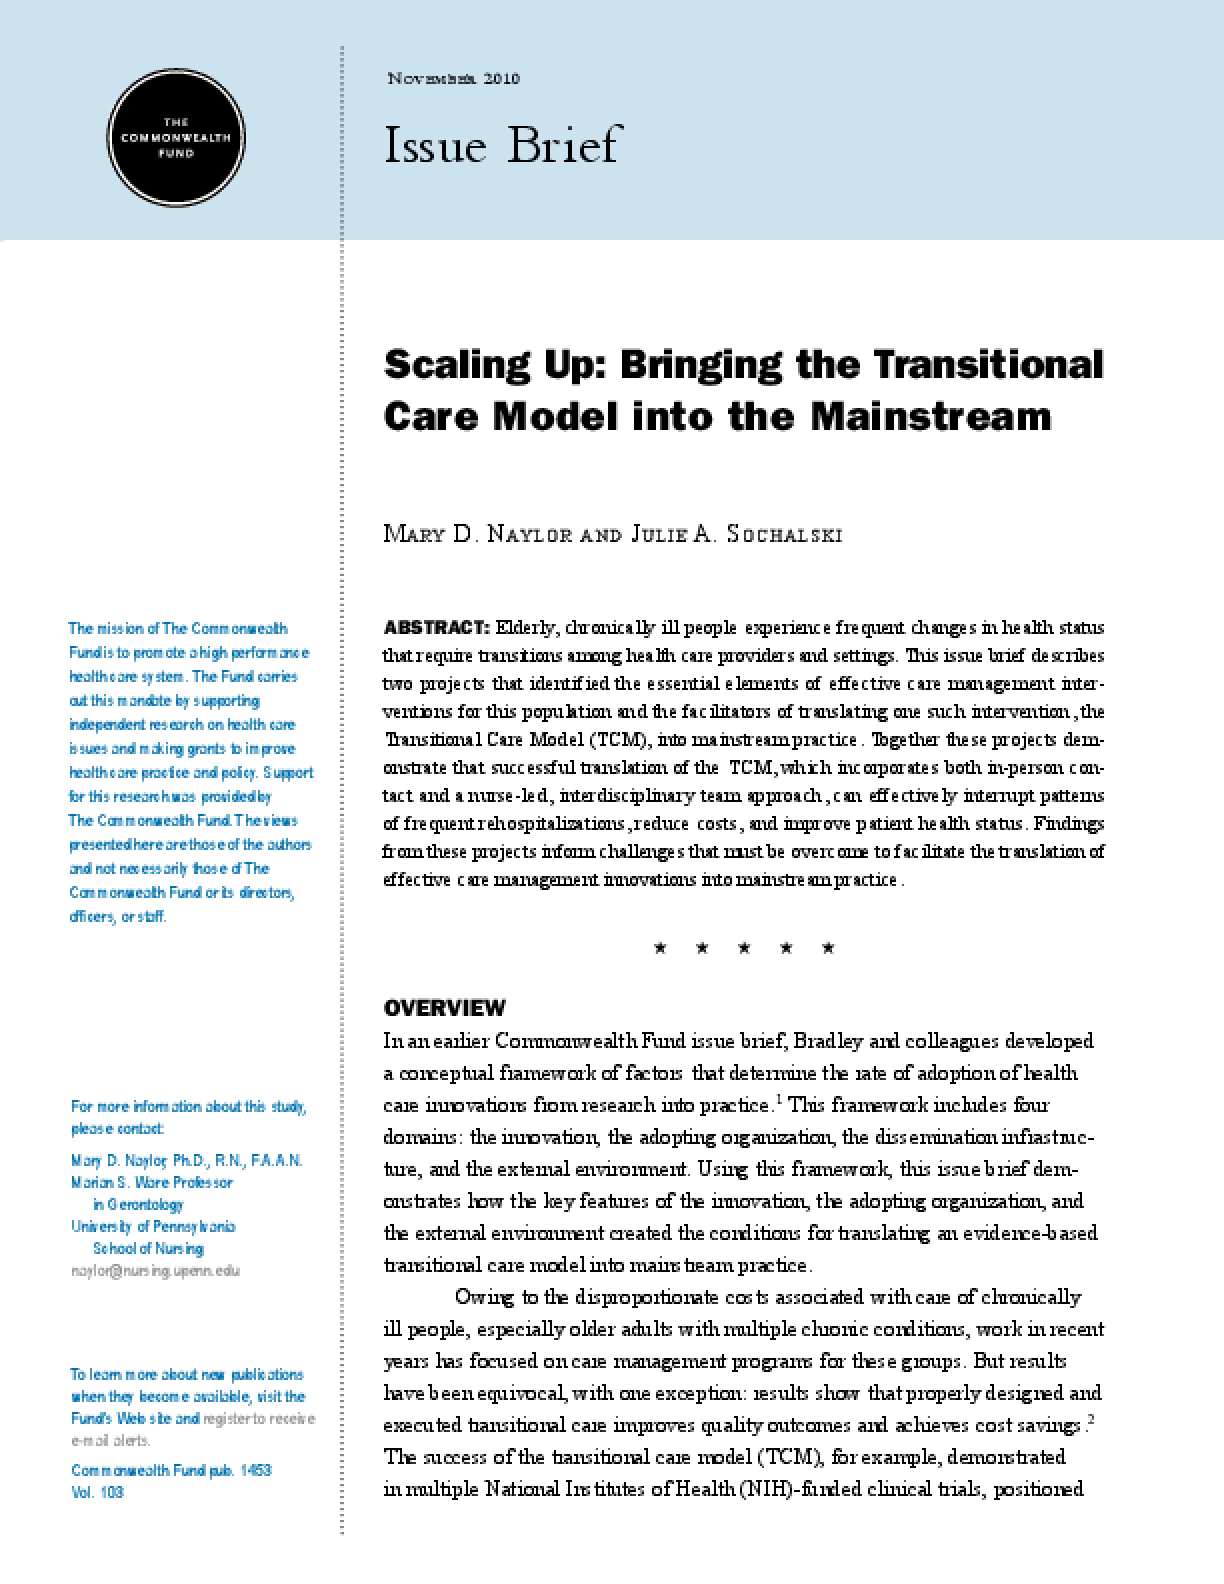 Scaling Up: Bringing the Transitional Care Model Into the Mainstream